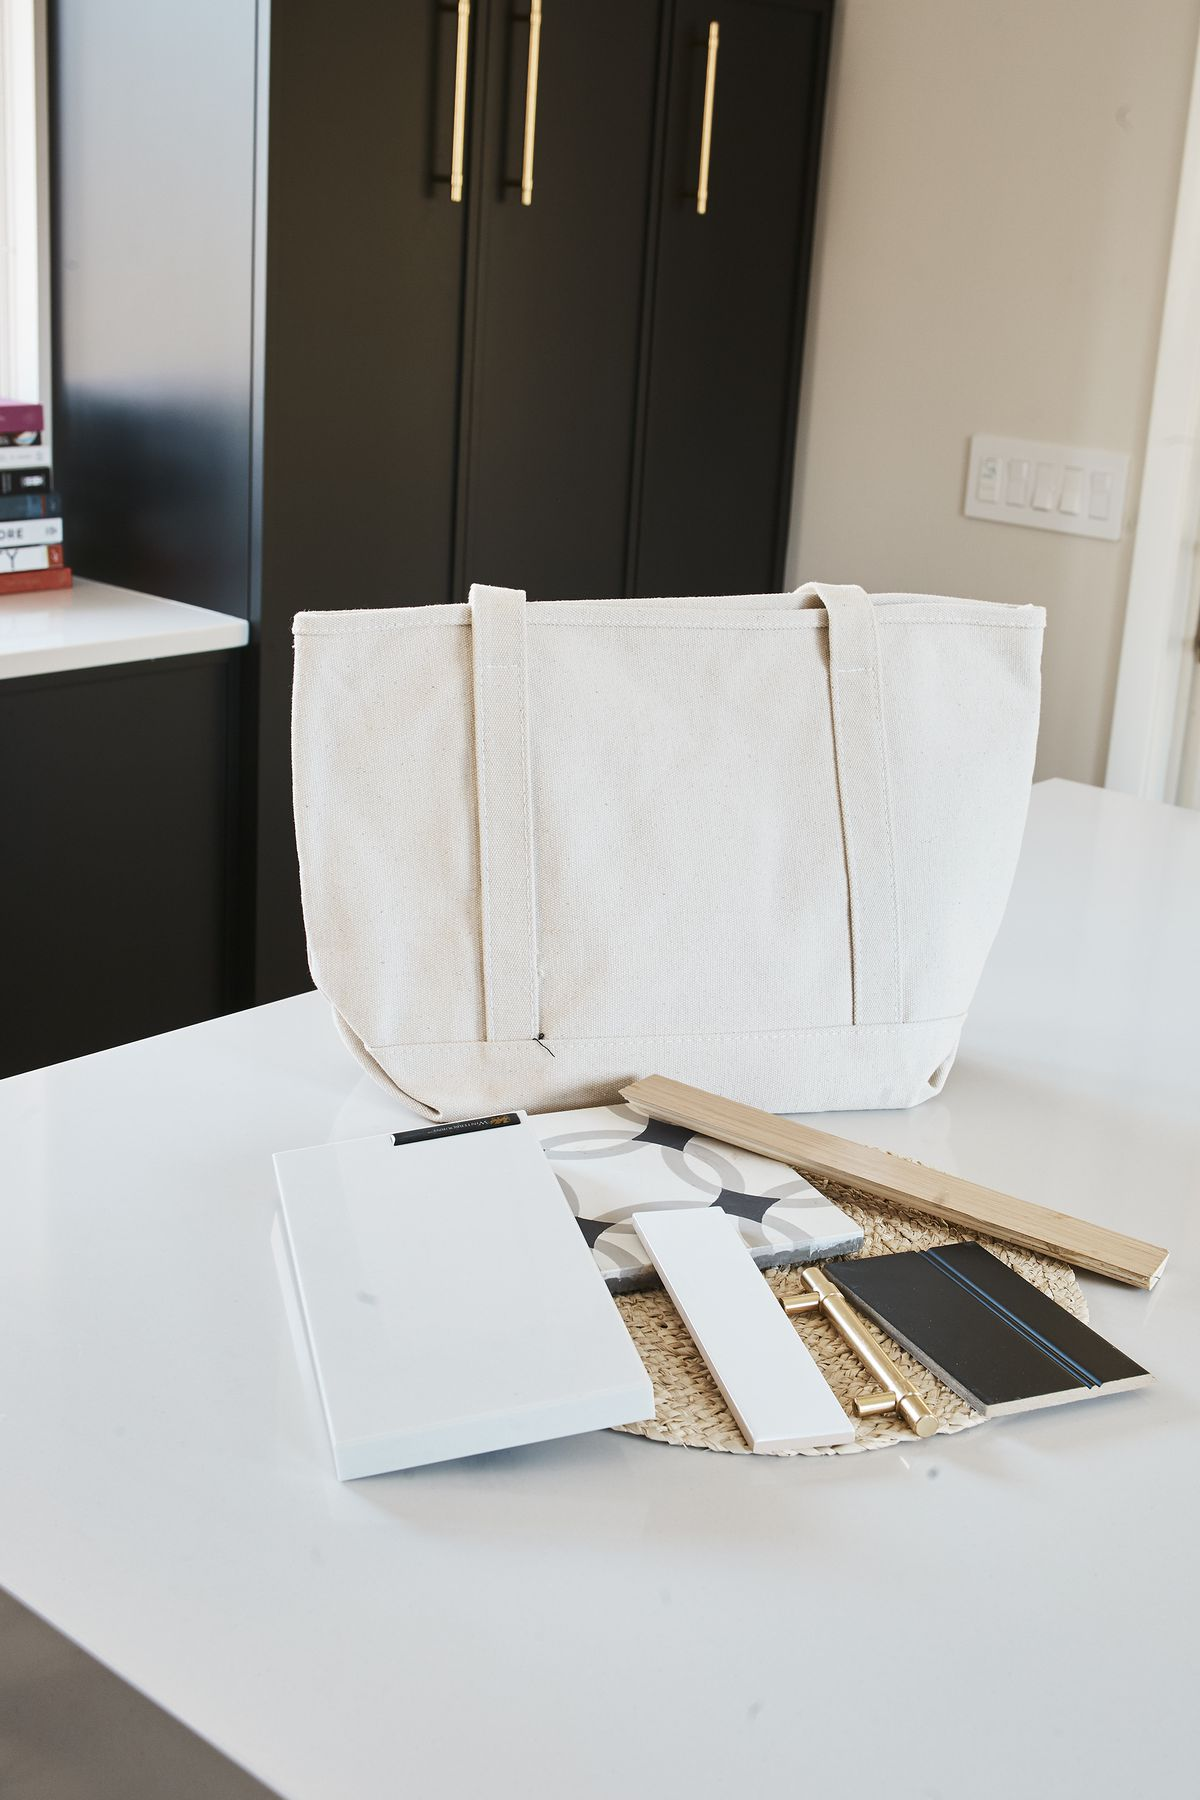 Kitchen renovation samples and bag